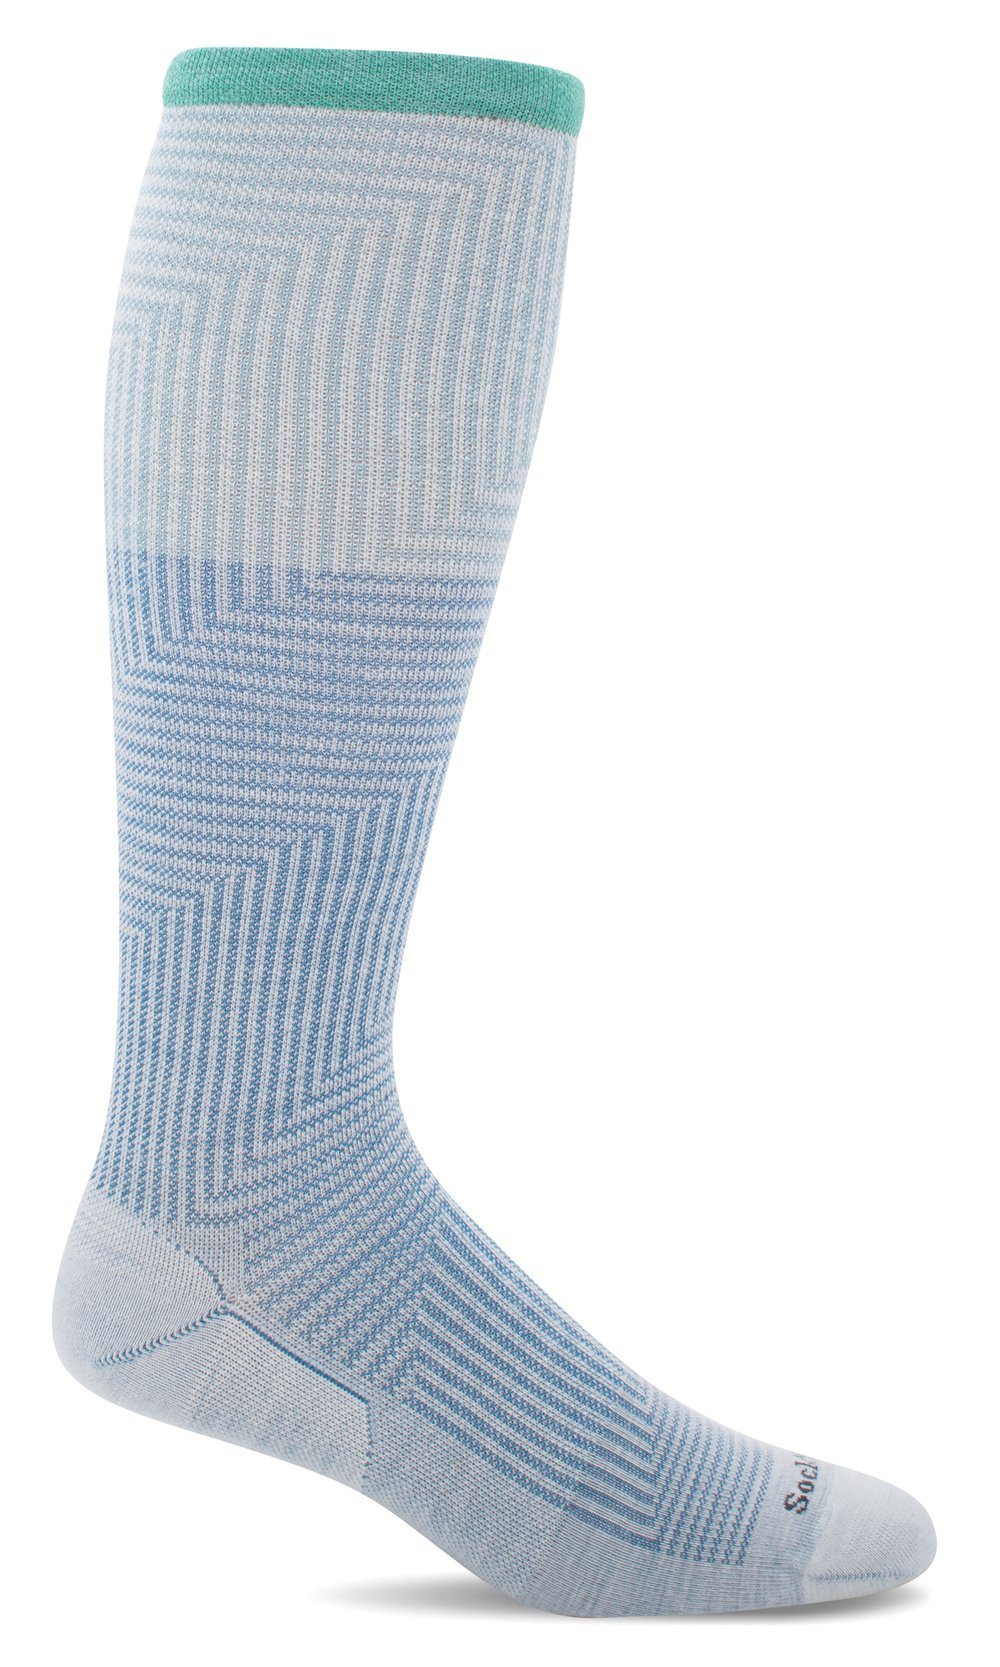 Women's Ripper Ultra Light Graduated Compression Knee High